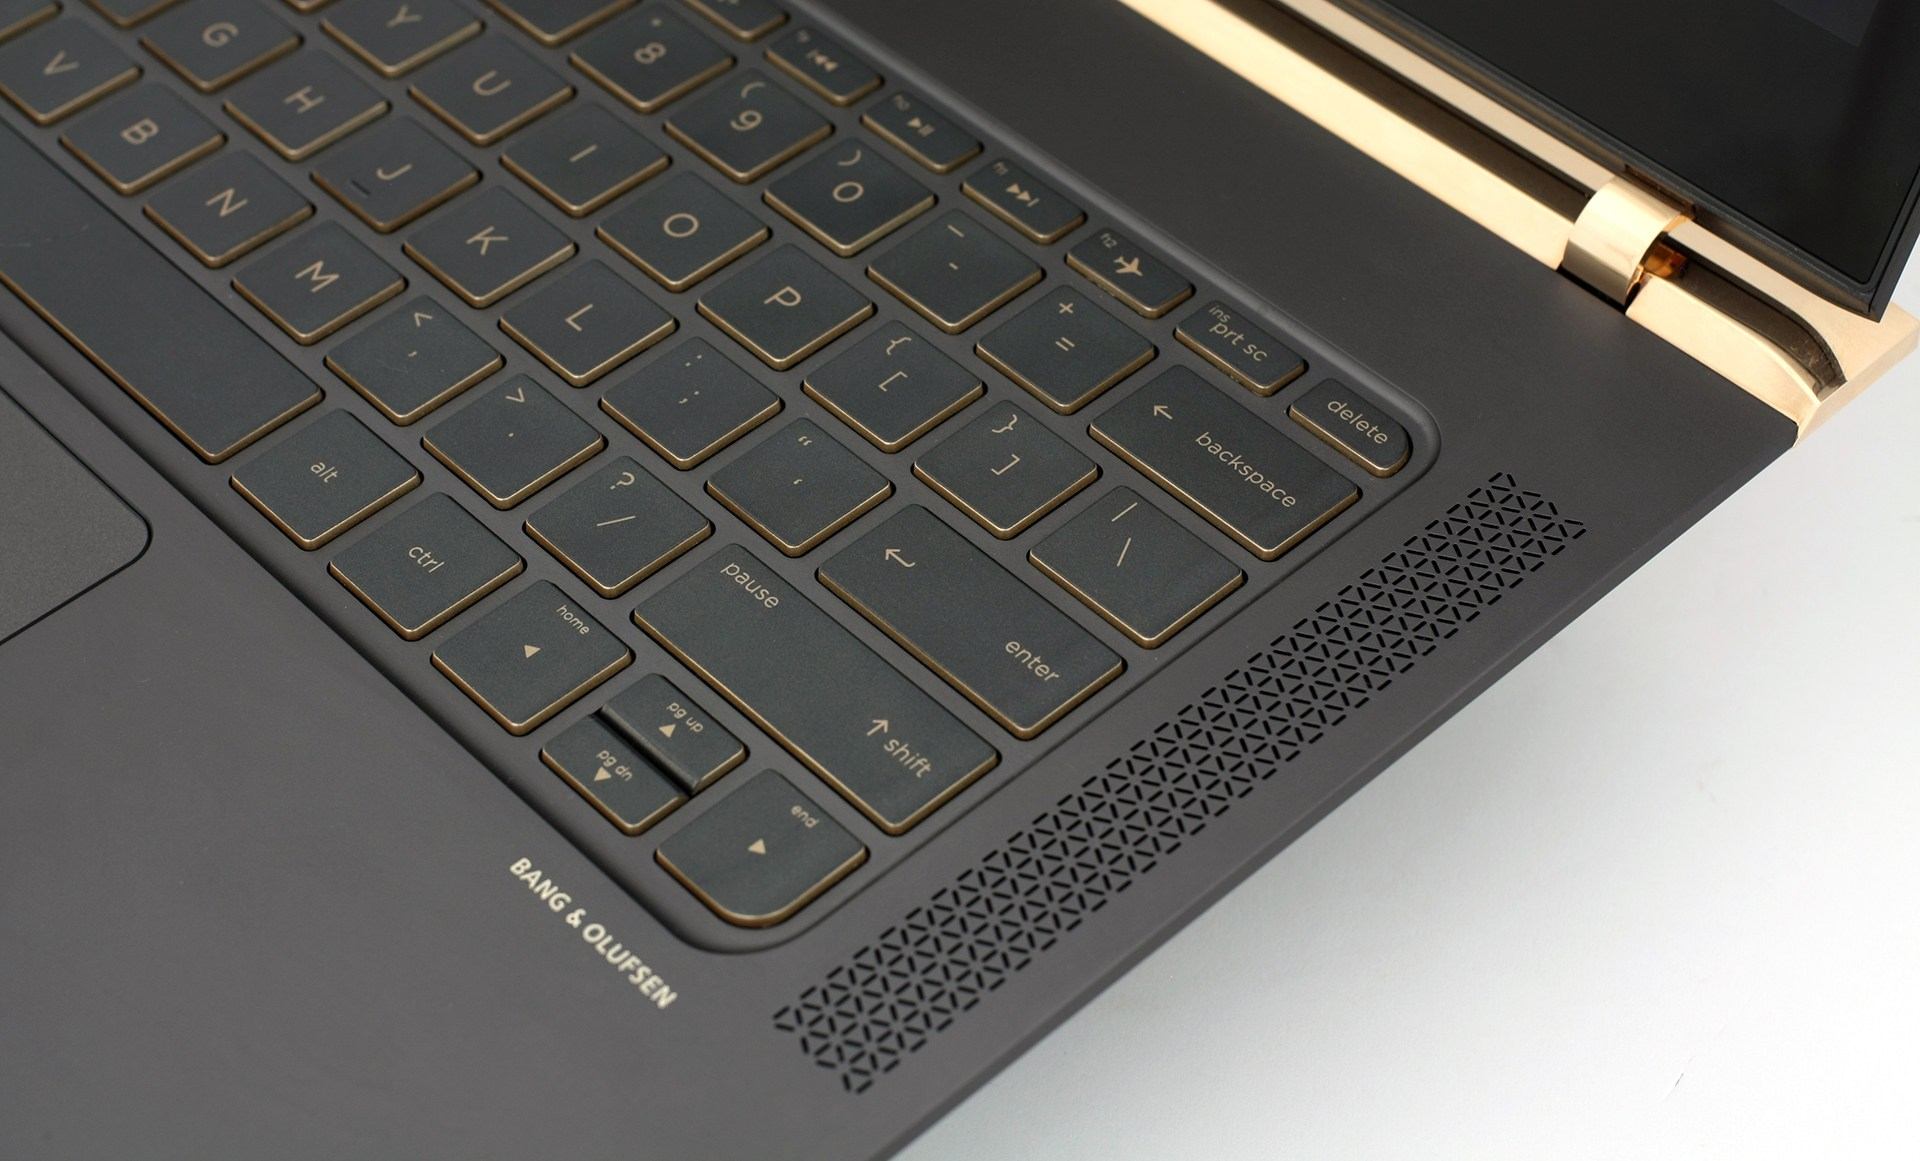 laptop hp spectre 13 2016 7